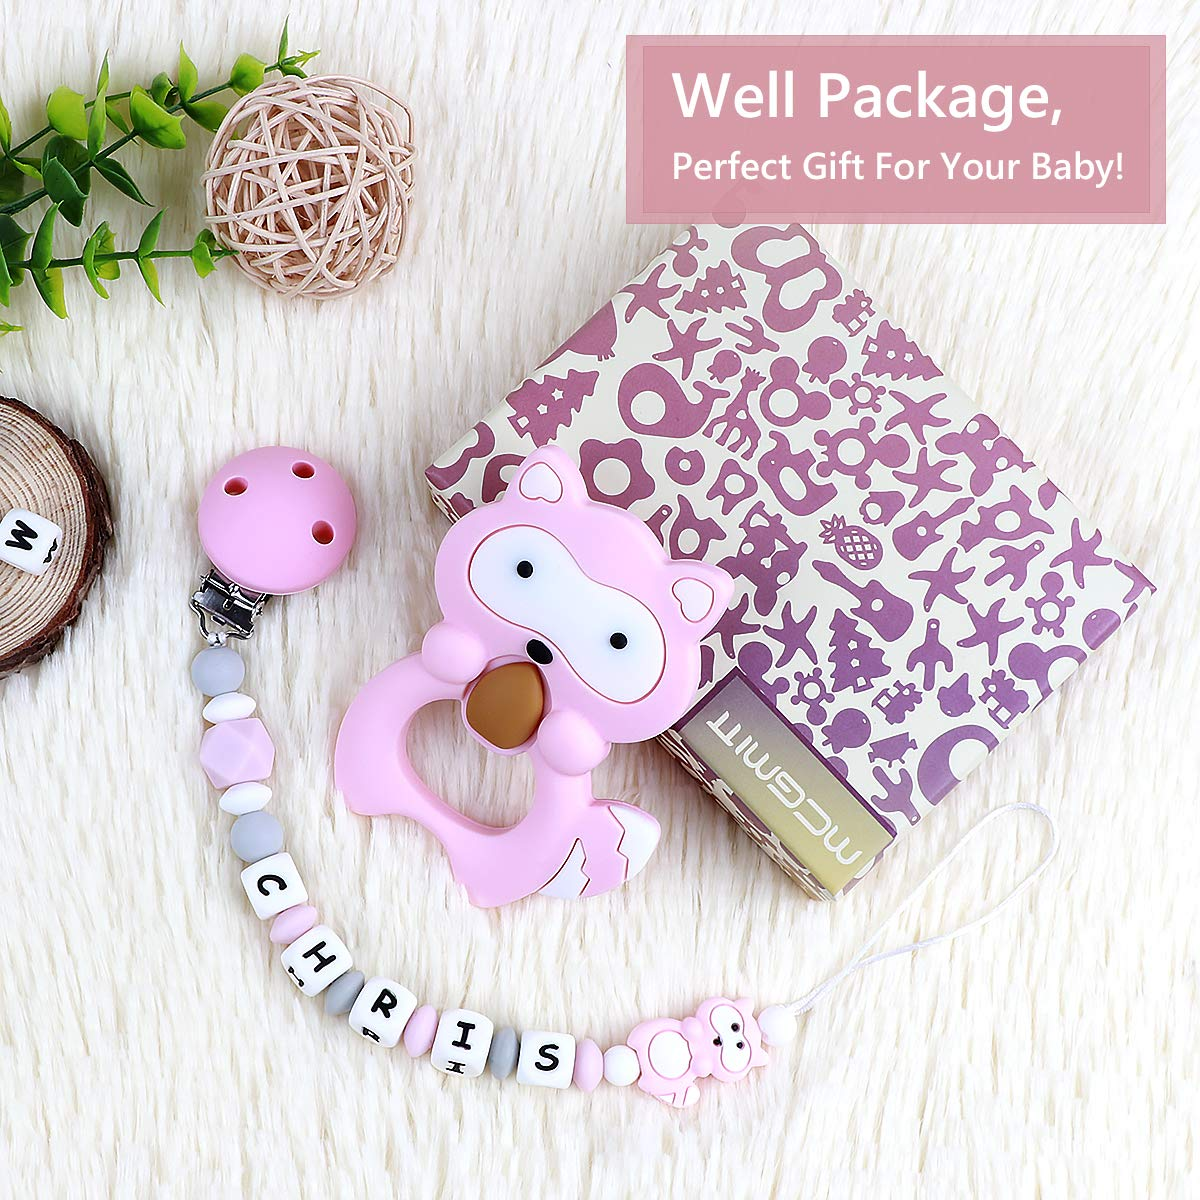 Dummy Clips Personalised Name Girls Teething Silicone Baby Pacifier Chain Soother Chain BPA Free Teething Relief Beads Binky Teether Holder Set Pink with Teething